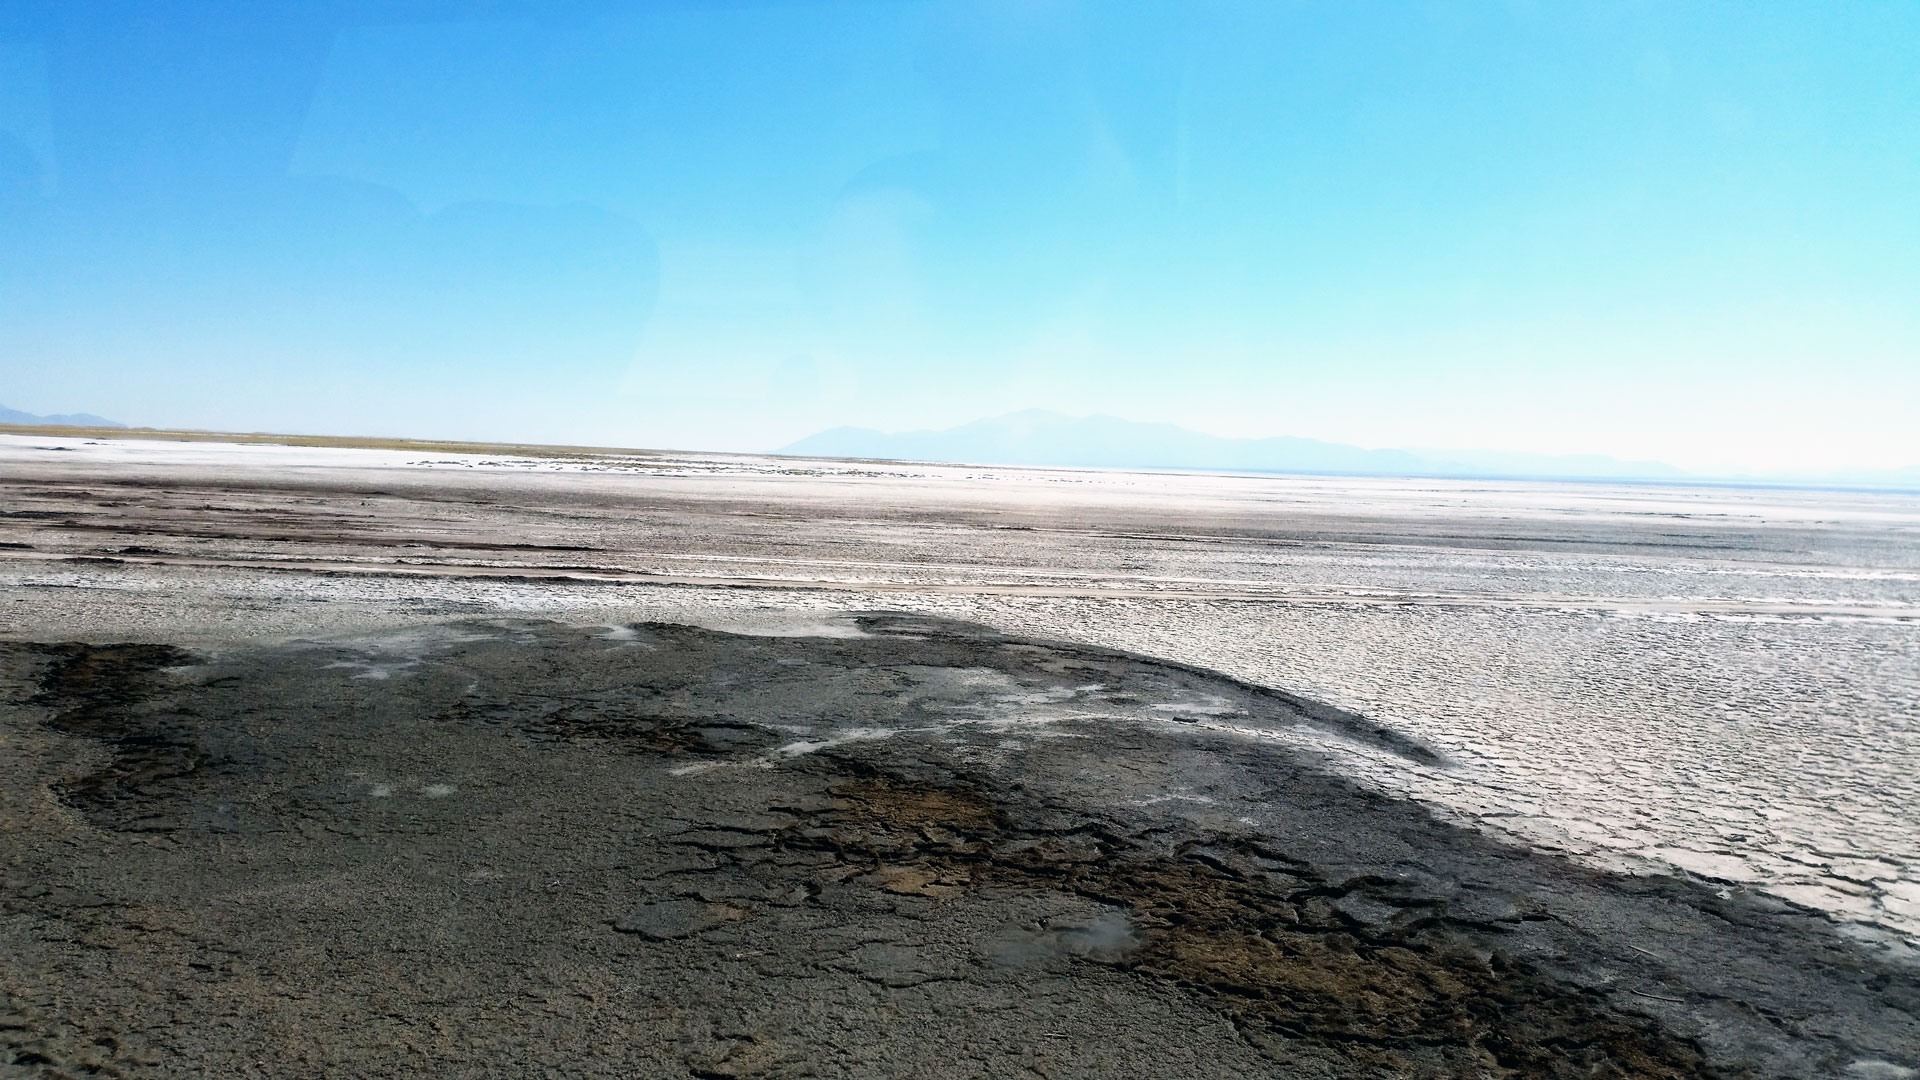 This huge dried up lake  is a crust of salt up to half-a-meter thick.  Sometimes the contrast between bright blue sky and the cracked and crusty white salt is almost blinding. Photo by Ovidiu Balaj